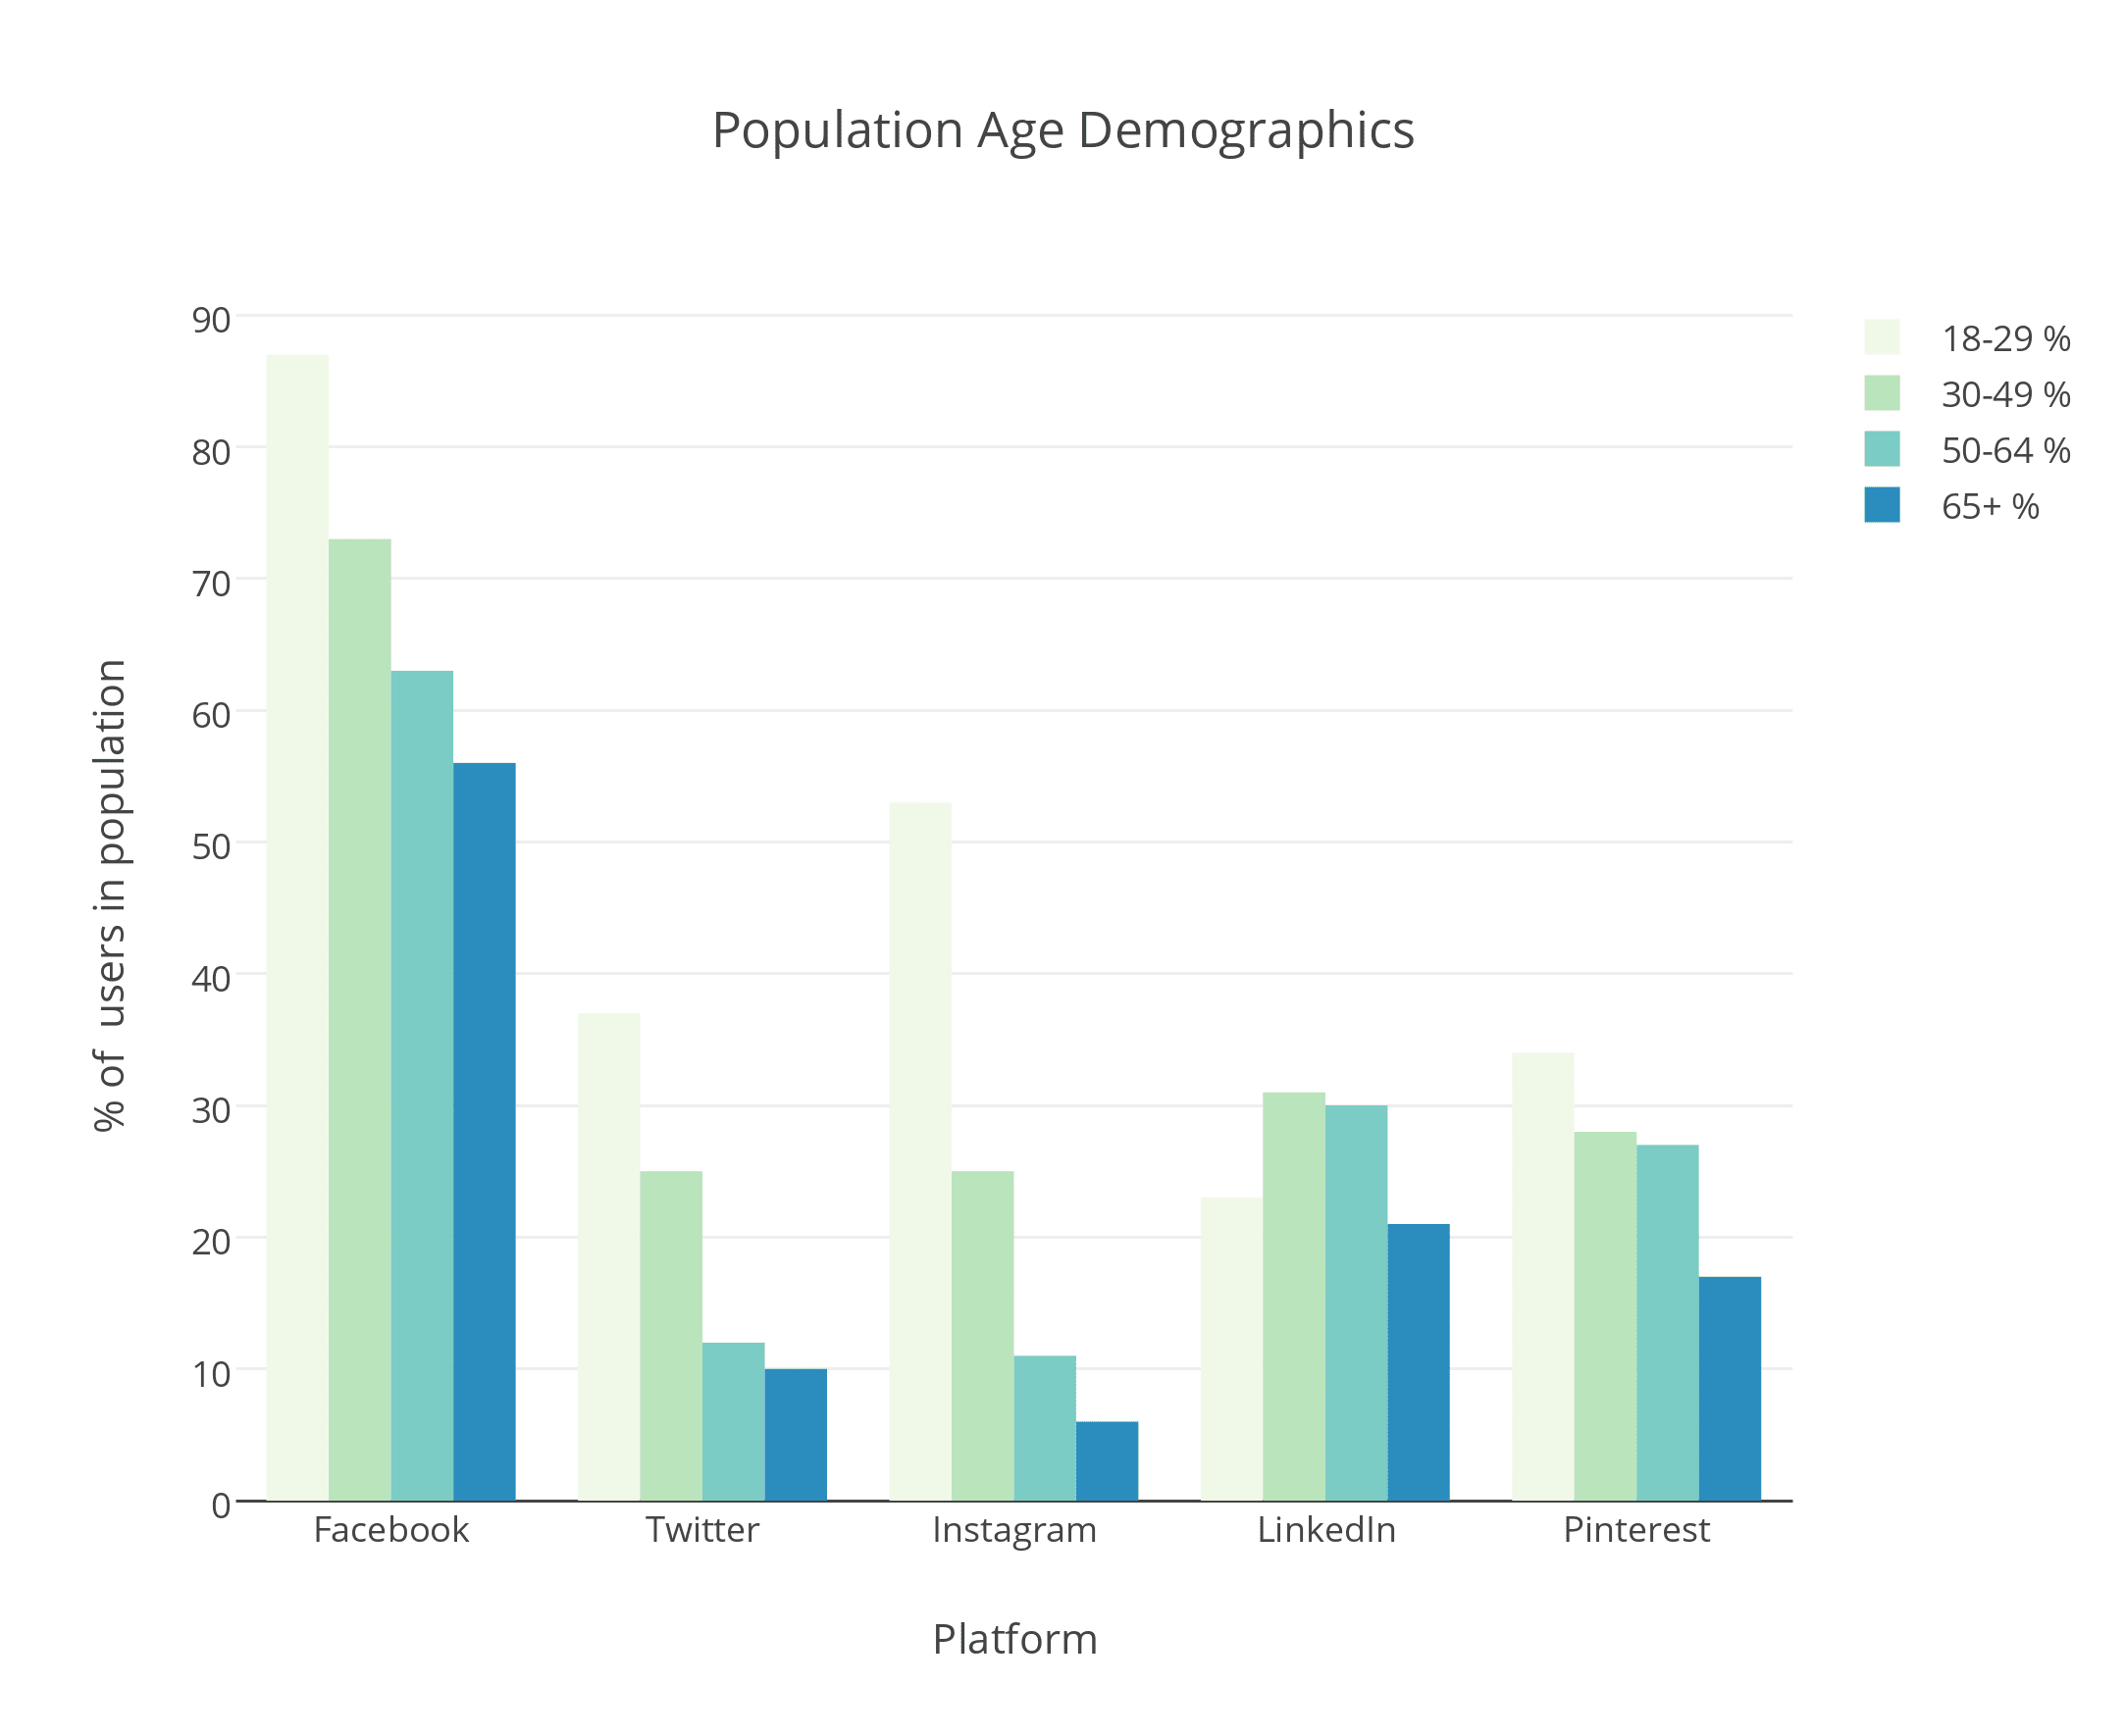 Population Age Demographics